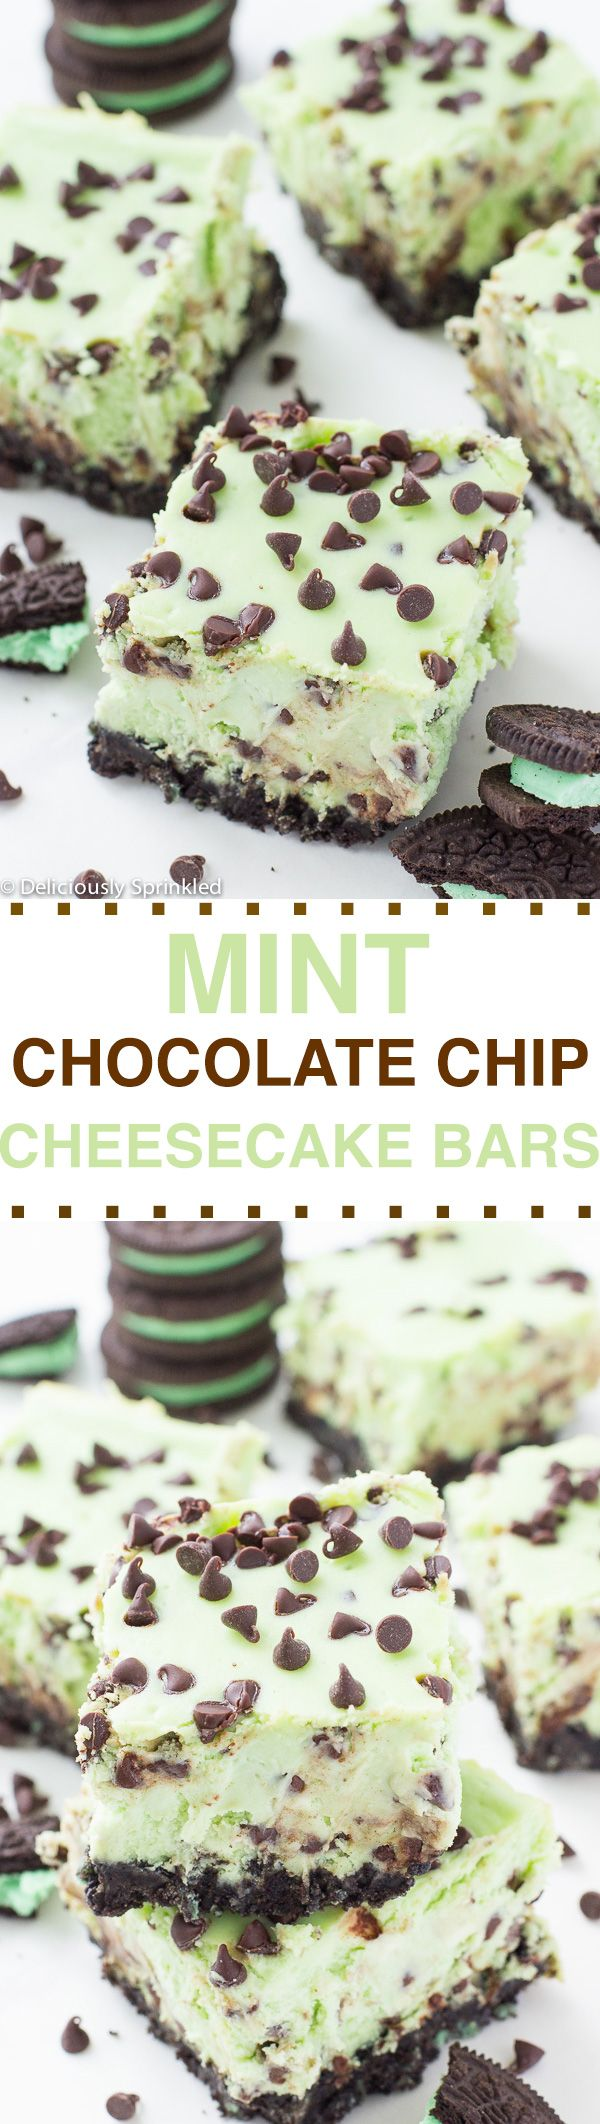 Mint Chocolate Chip Cheesecake Bars